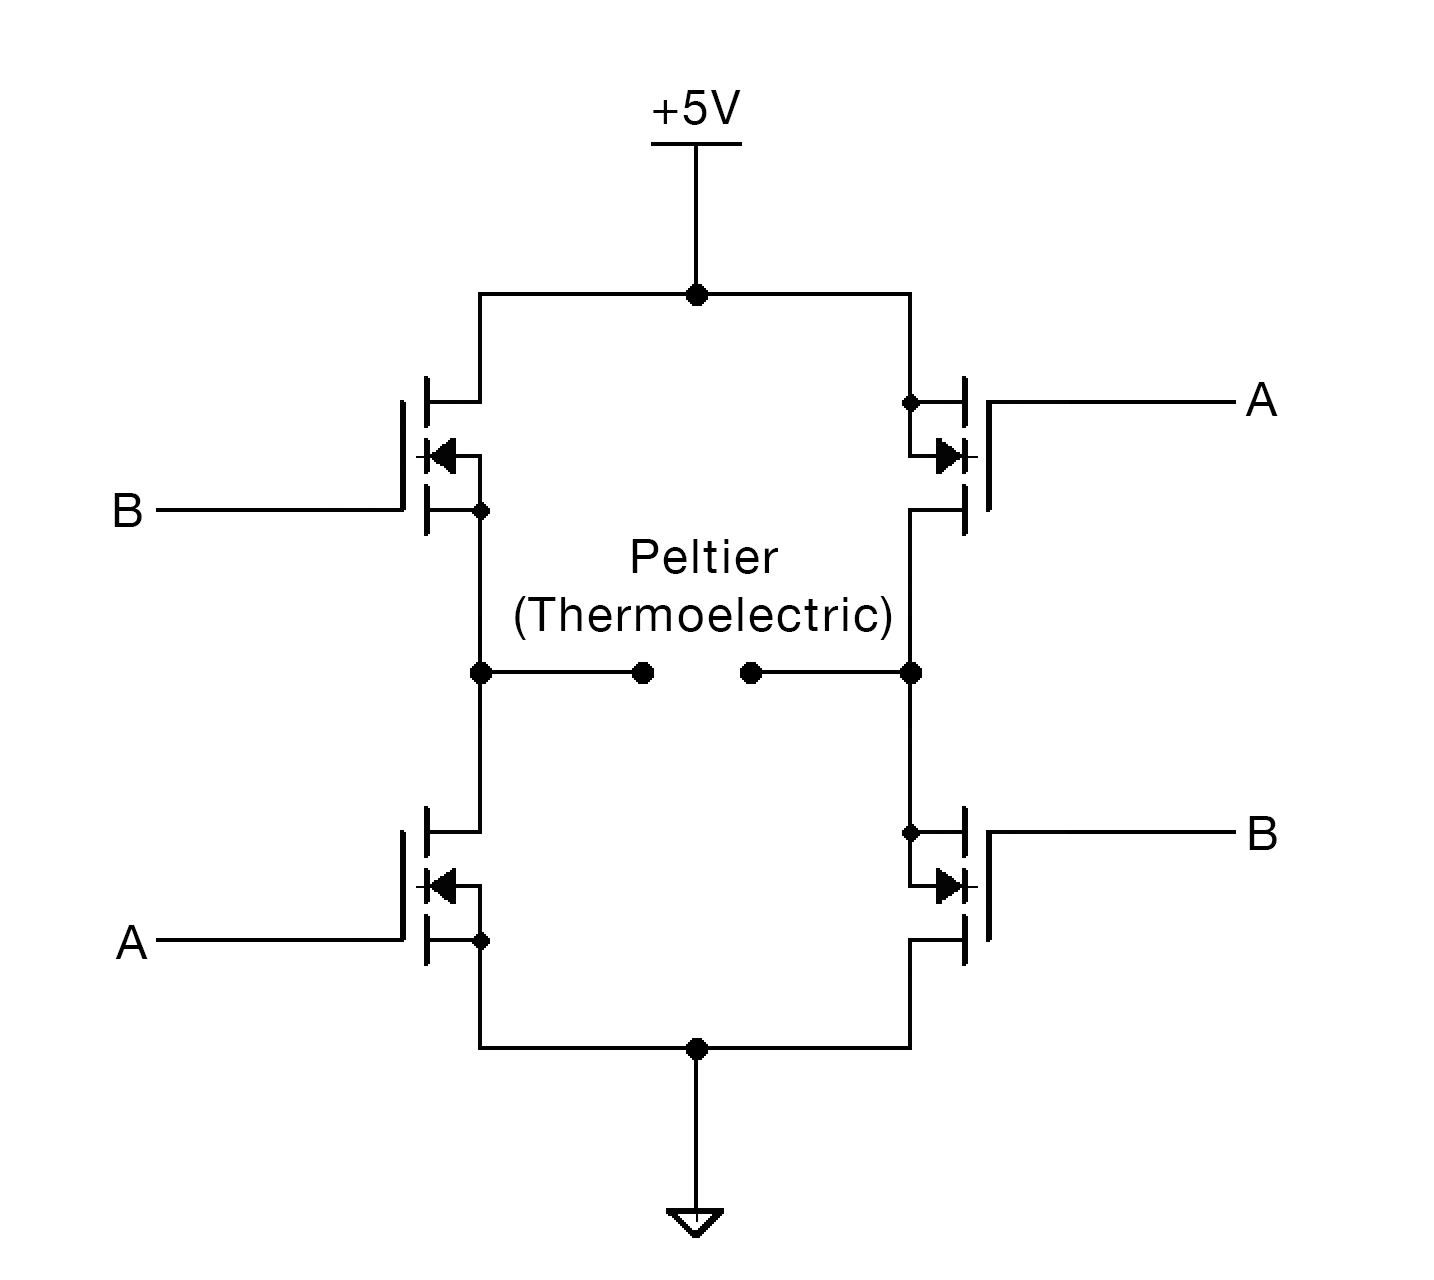 Need help understanding the mypin ta4 temperature moreover Hobart Mixer Motor Wiring Diagram likewise Boiler Pid Controller Wiring Diagram as well Digital Temperature Controller Circuit Schematic Diagram further Thermocouple For Boiler Wiring Diagram. on pid controller wiring diagrams